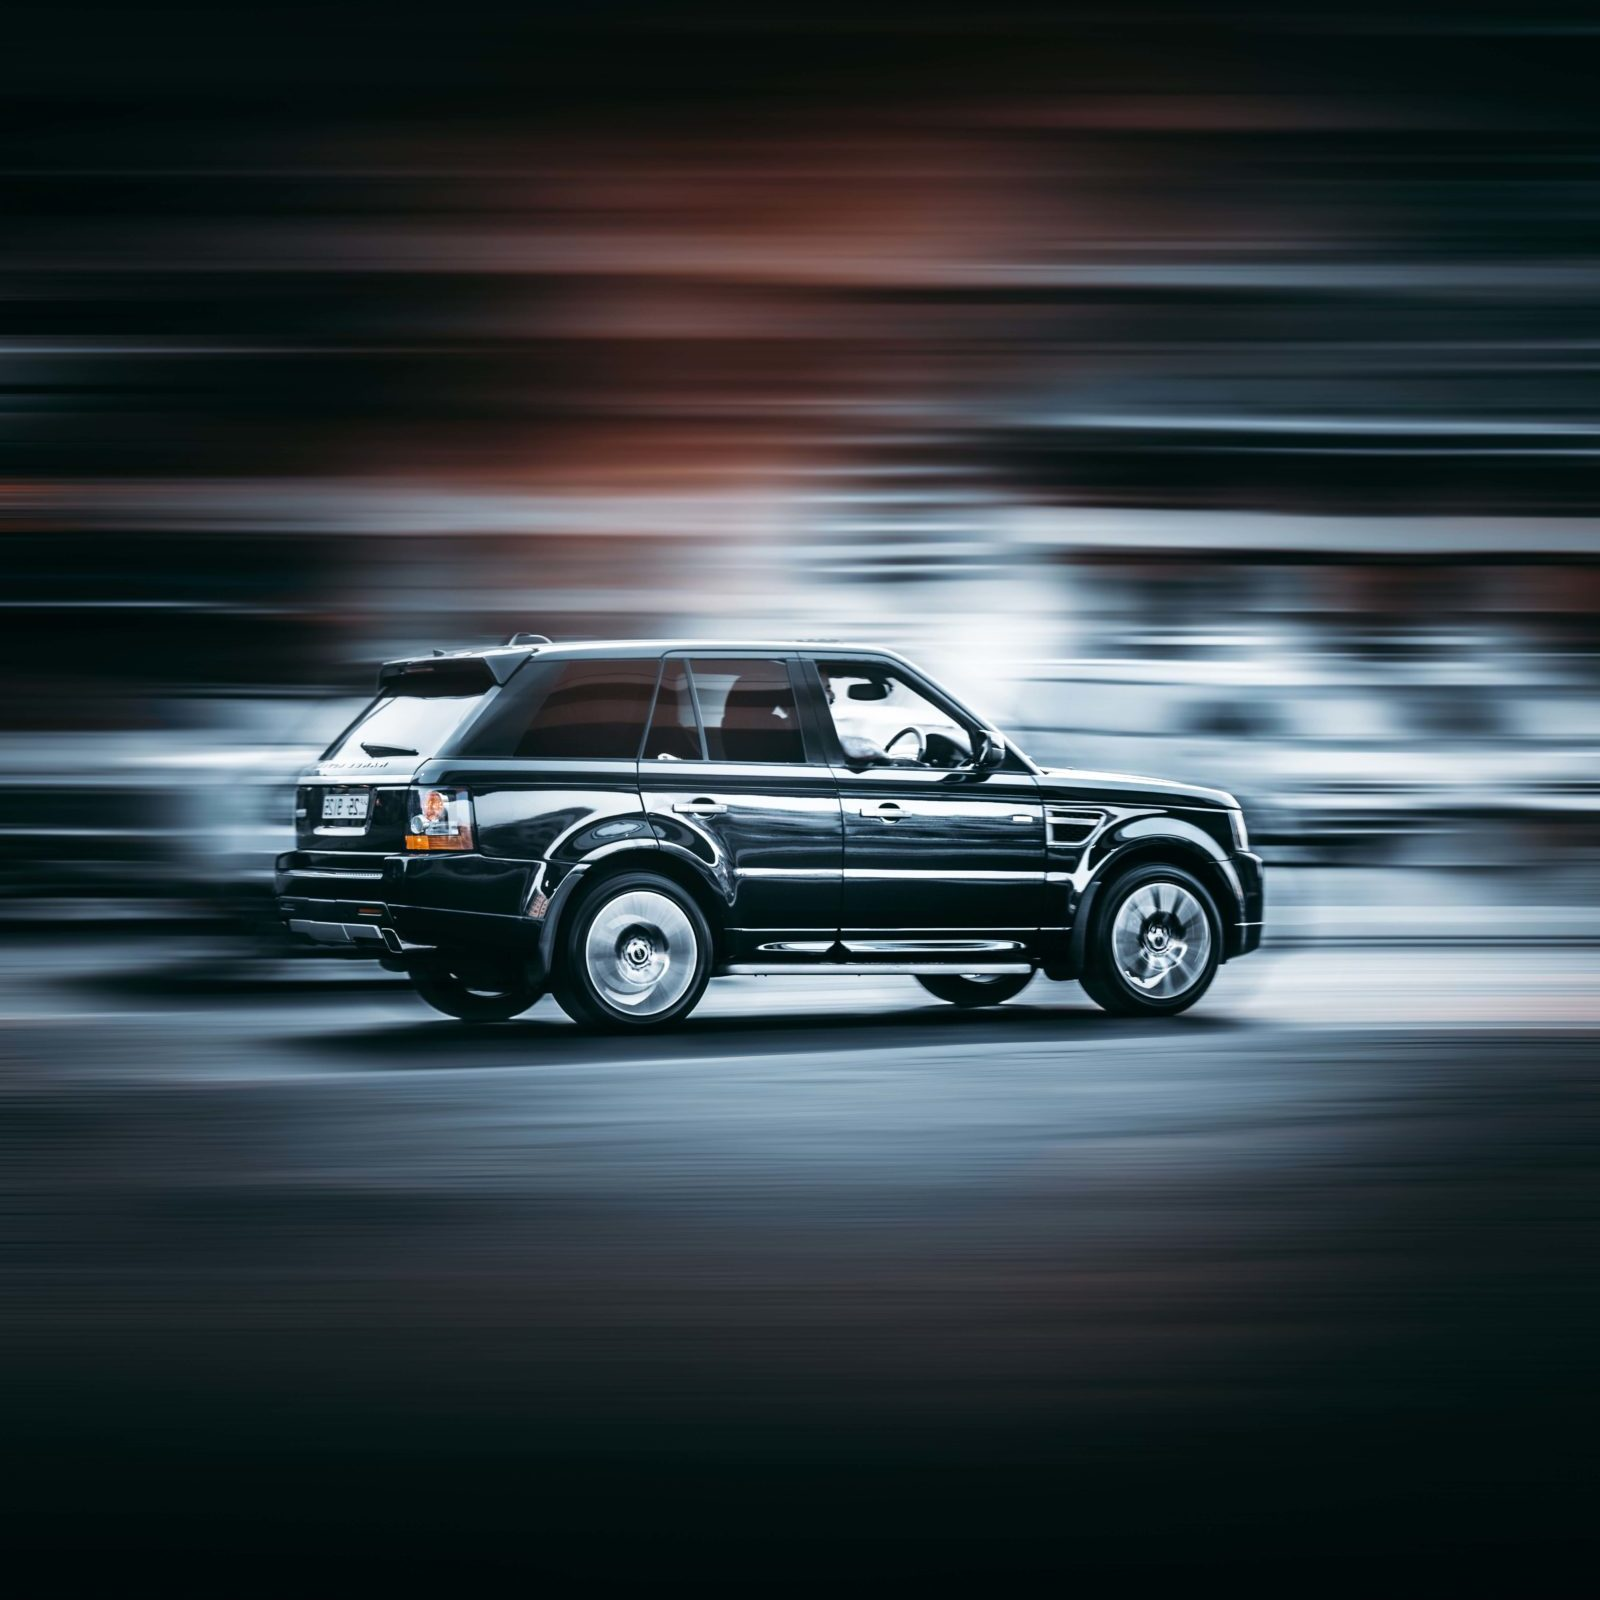 Range Rover driving towards the right. The background is blurred.